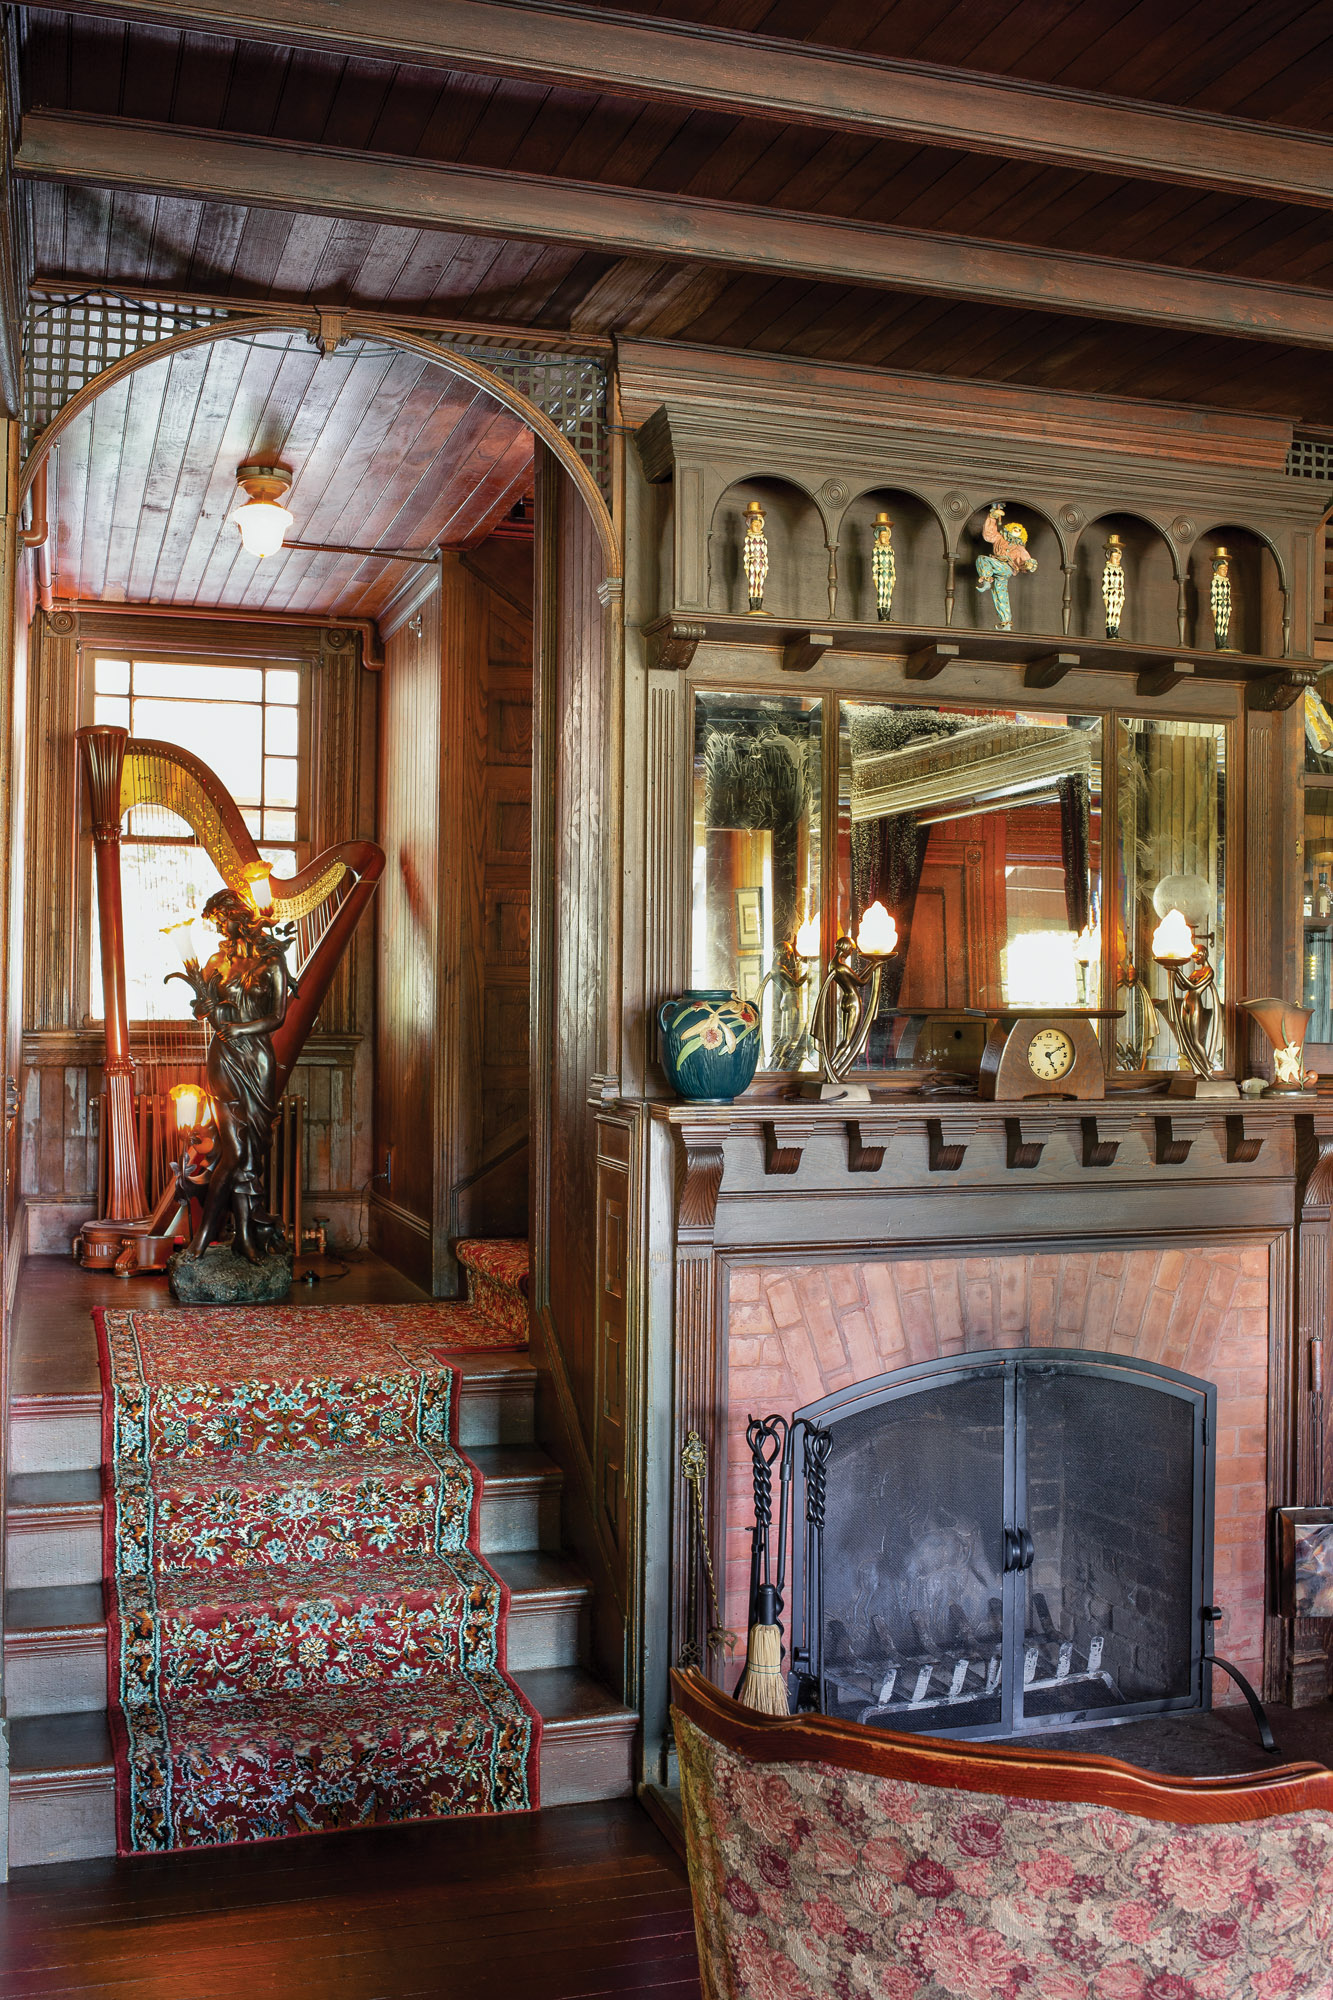 Guests often gather by the fireplace. In the nook leading upstairs sit an antique harp and a spelter maiden, long detached from the newel post in her former home.